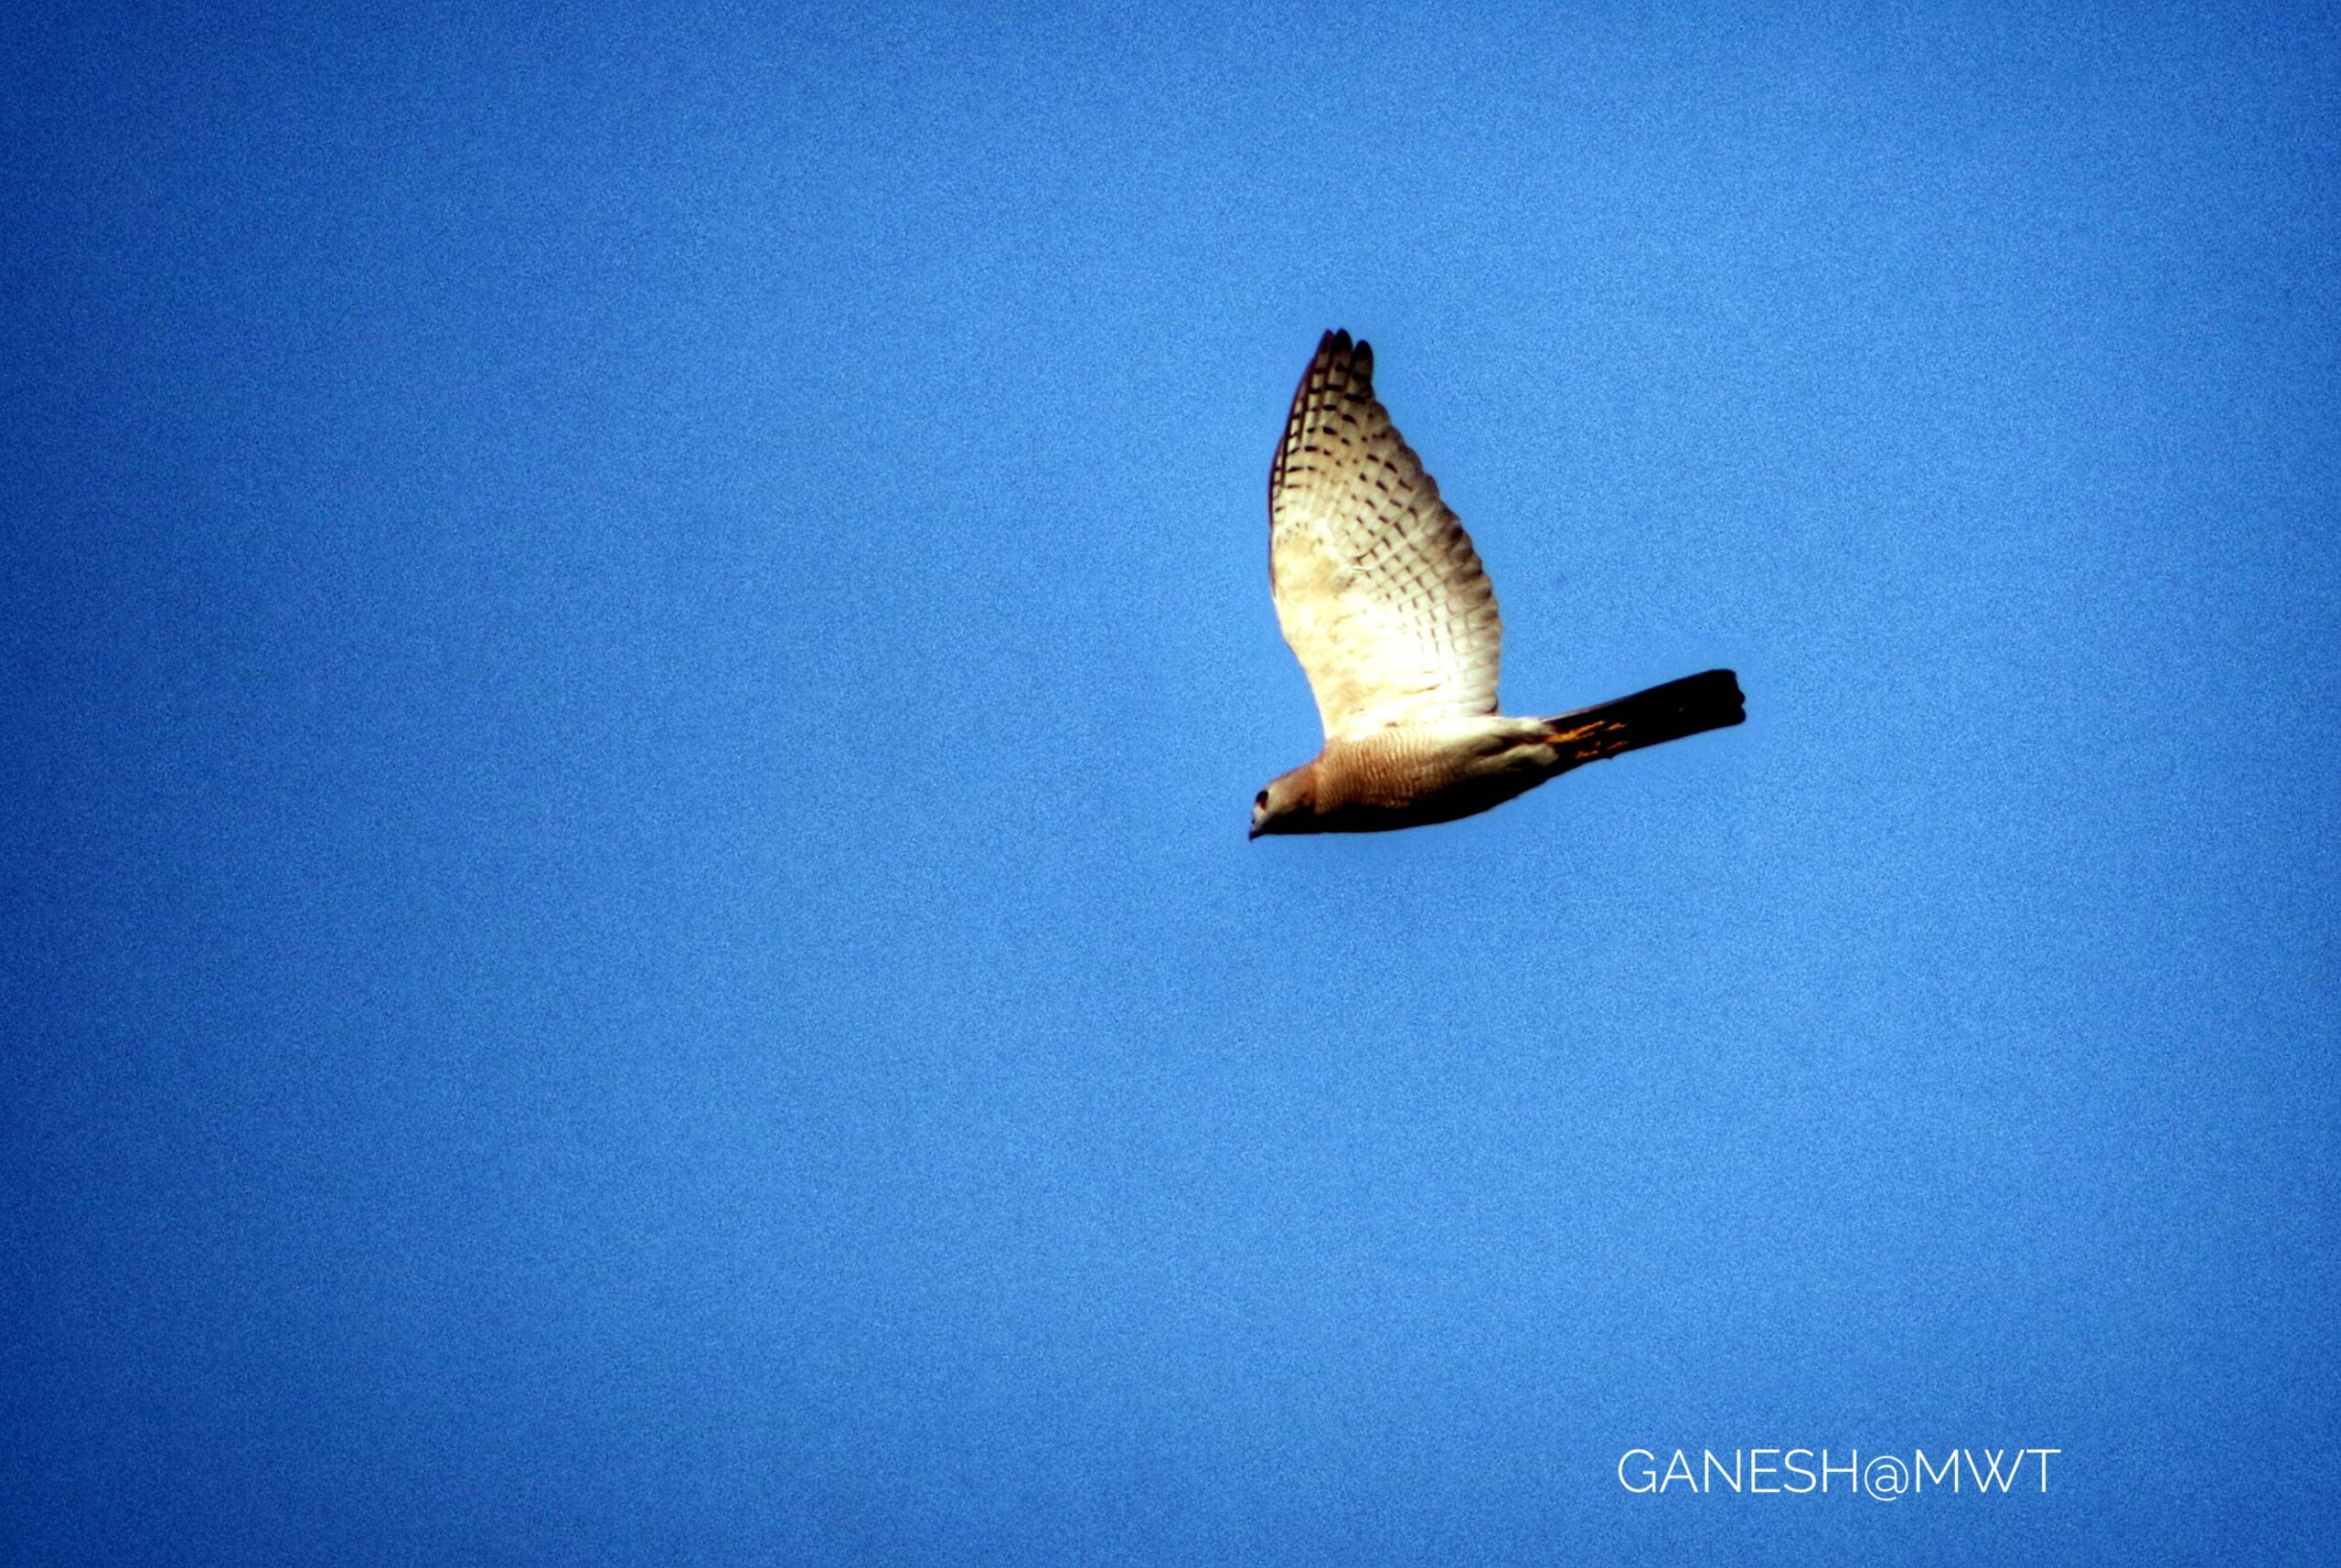 Shikra sighted during bird watching in Janakpur